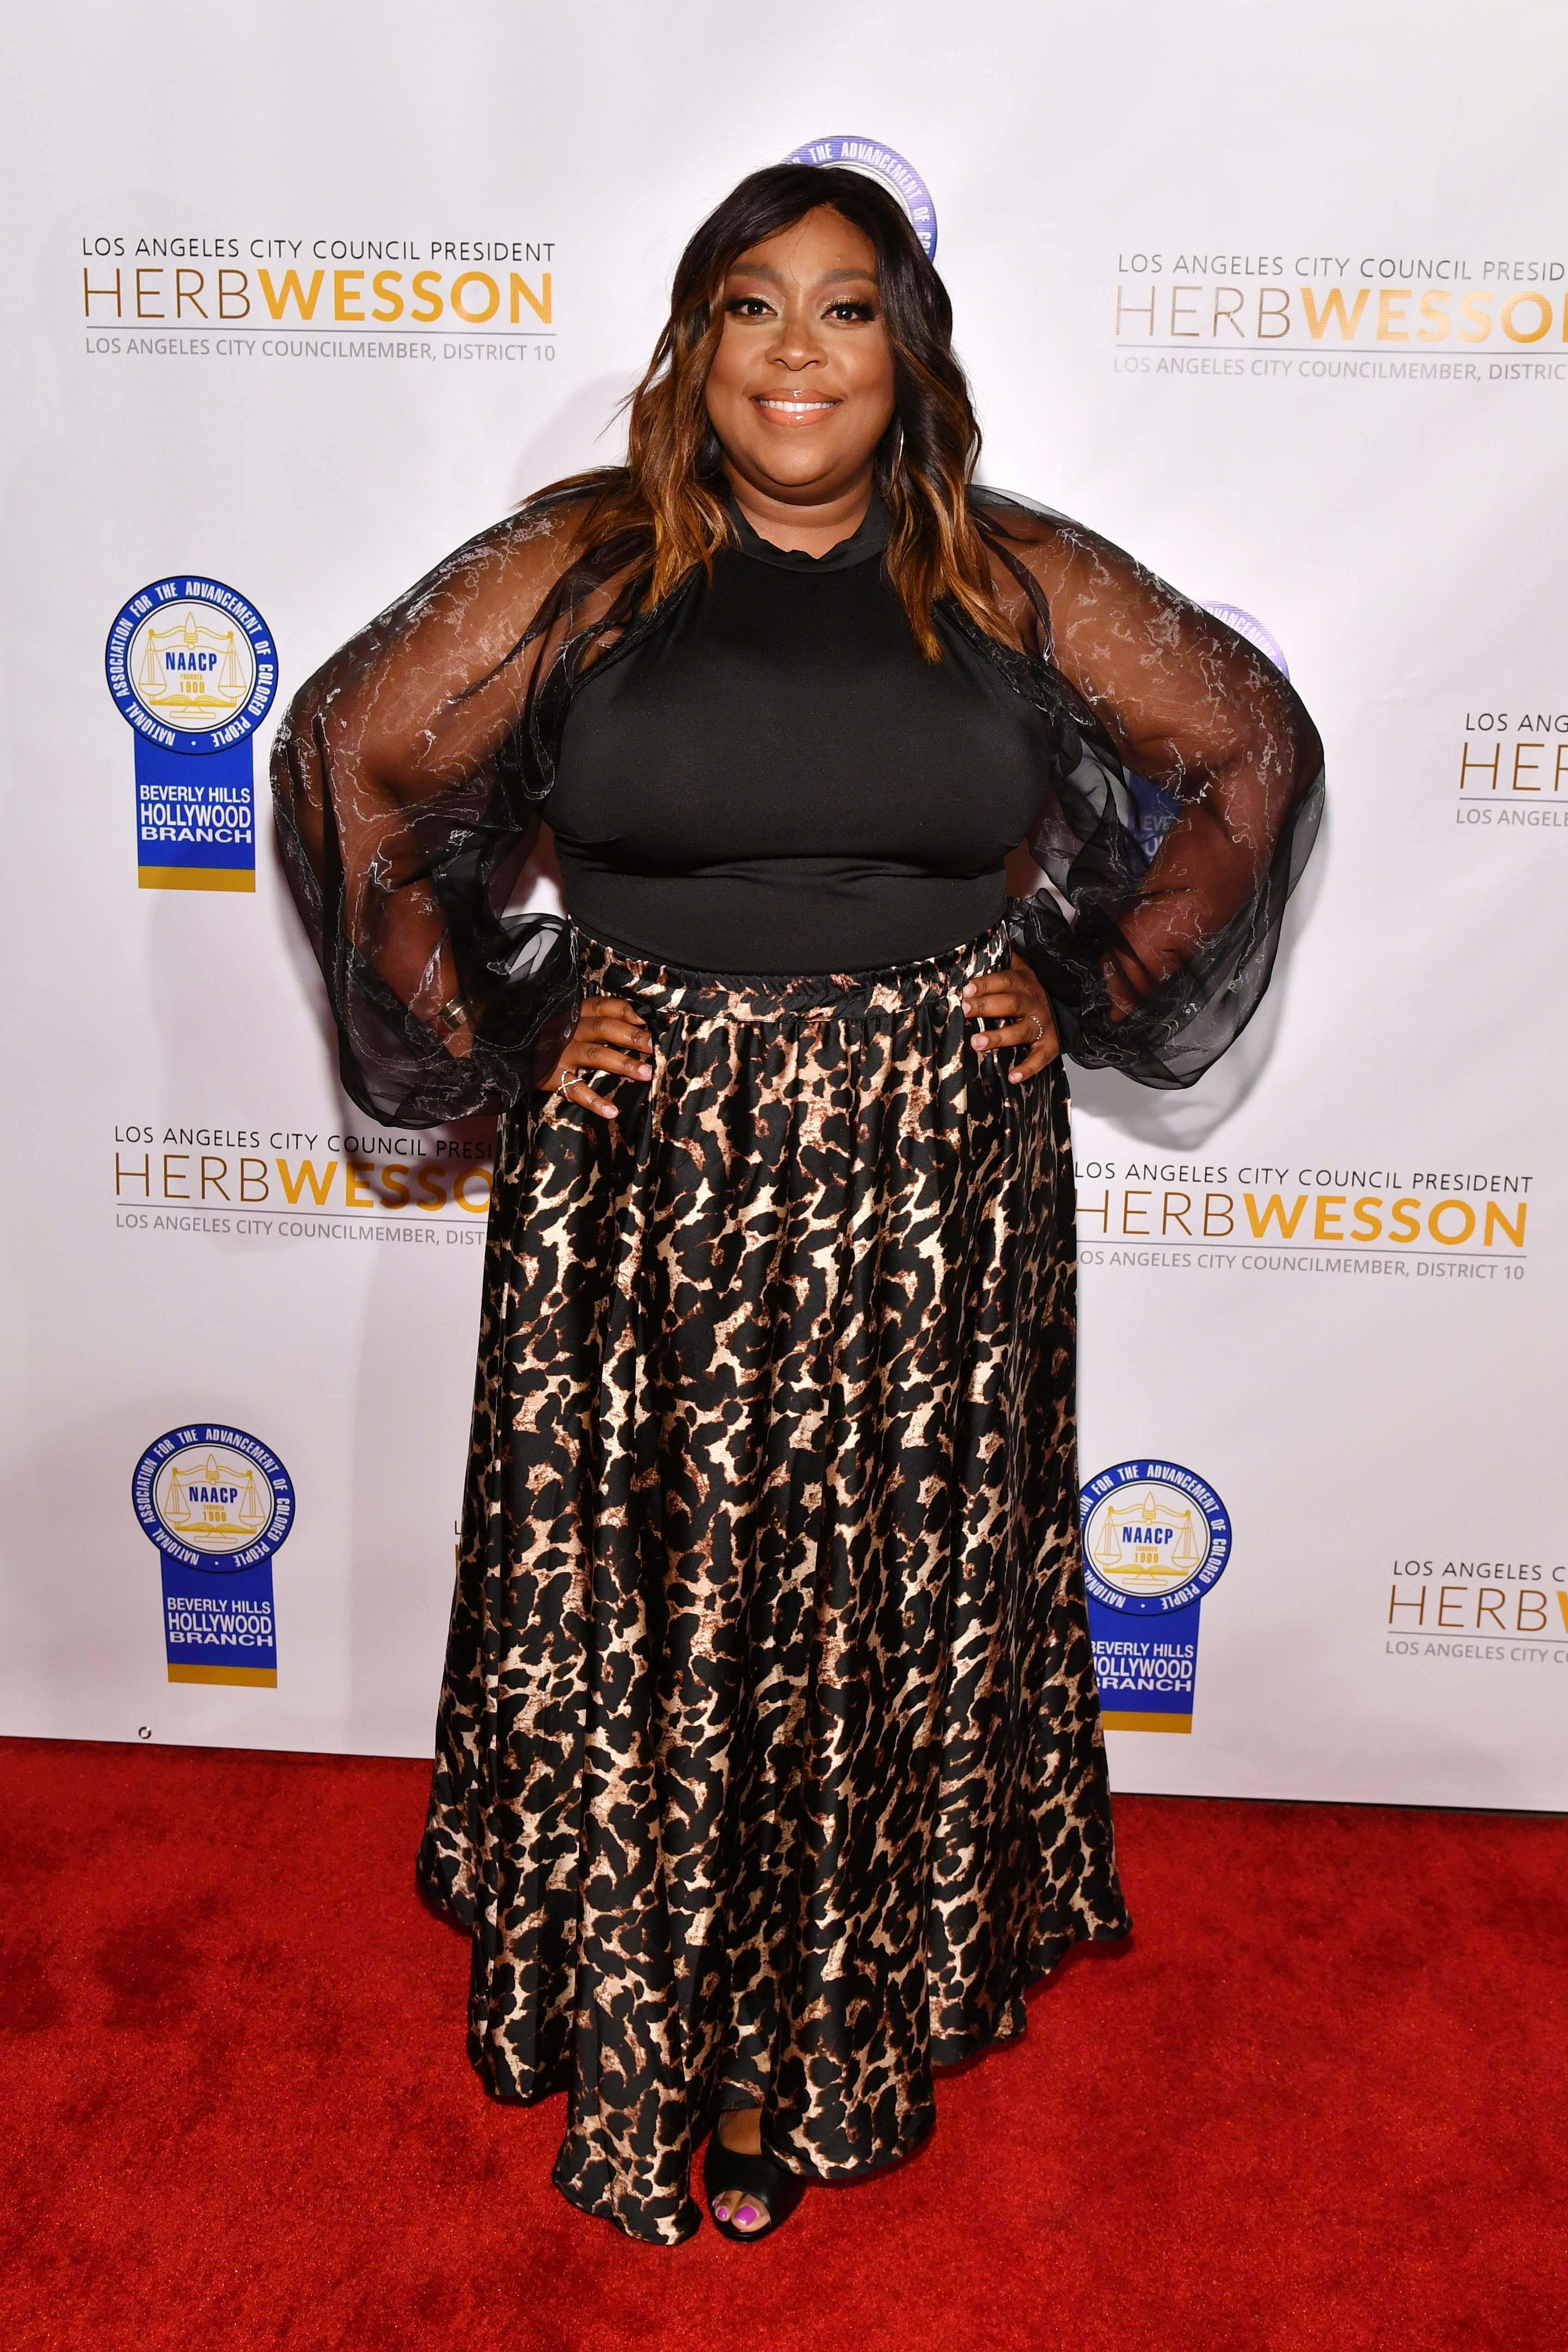 Loni Love attends the 28th Annual NAACP Theatre Awards at Millennium Biltmore Hotel on June 17, 2019| Photo: Getty Images